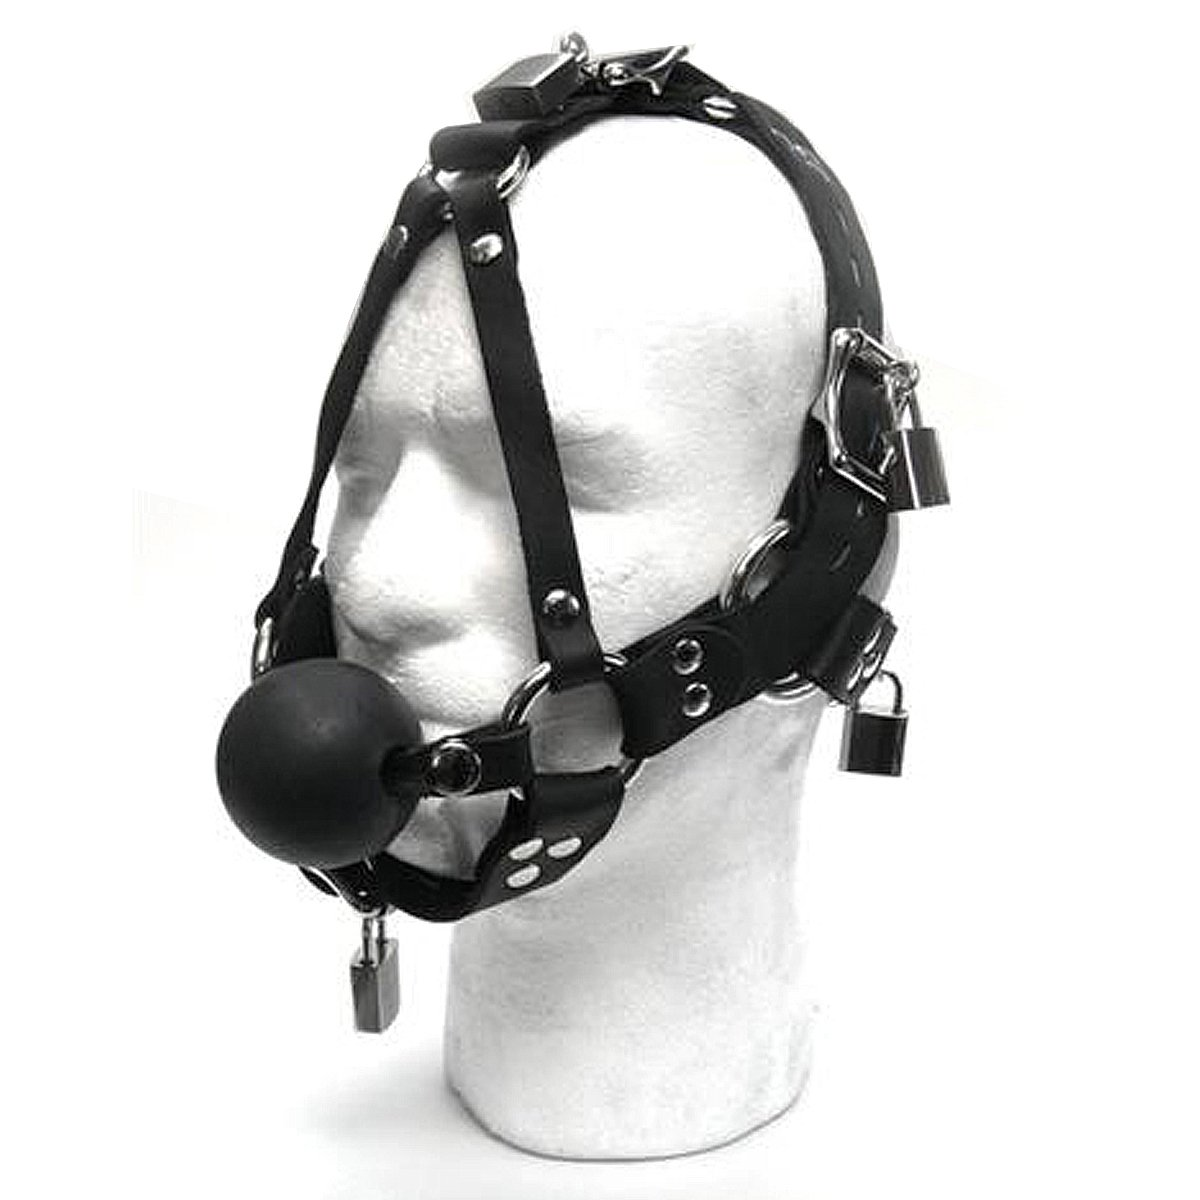 Dungeonware Exclusive Locking Ball Gag Head Harness by Dungeonware